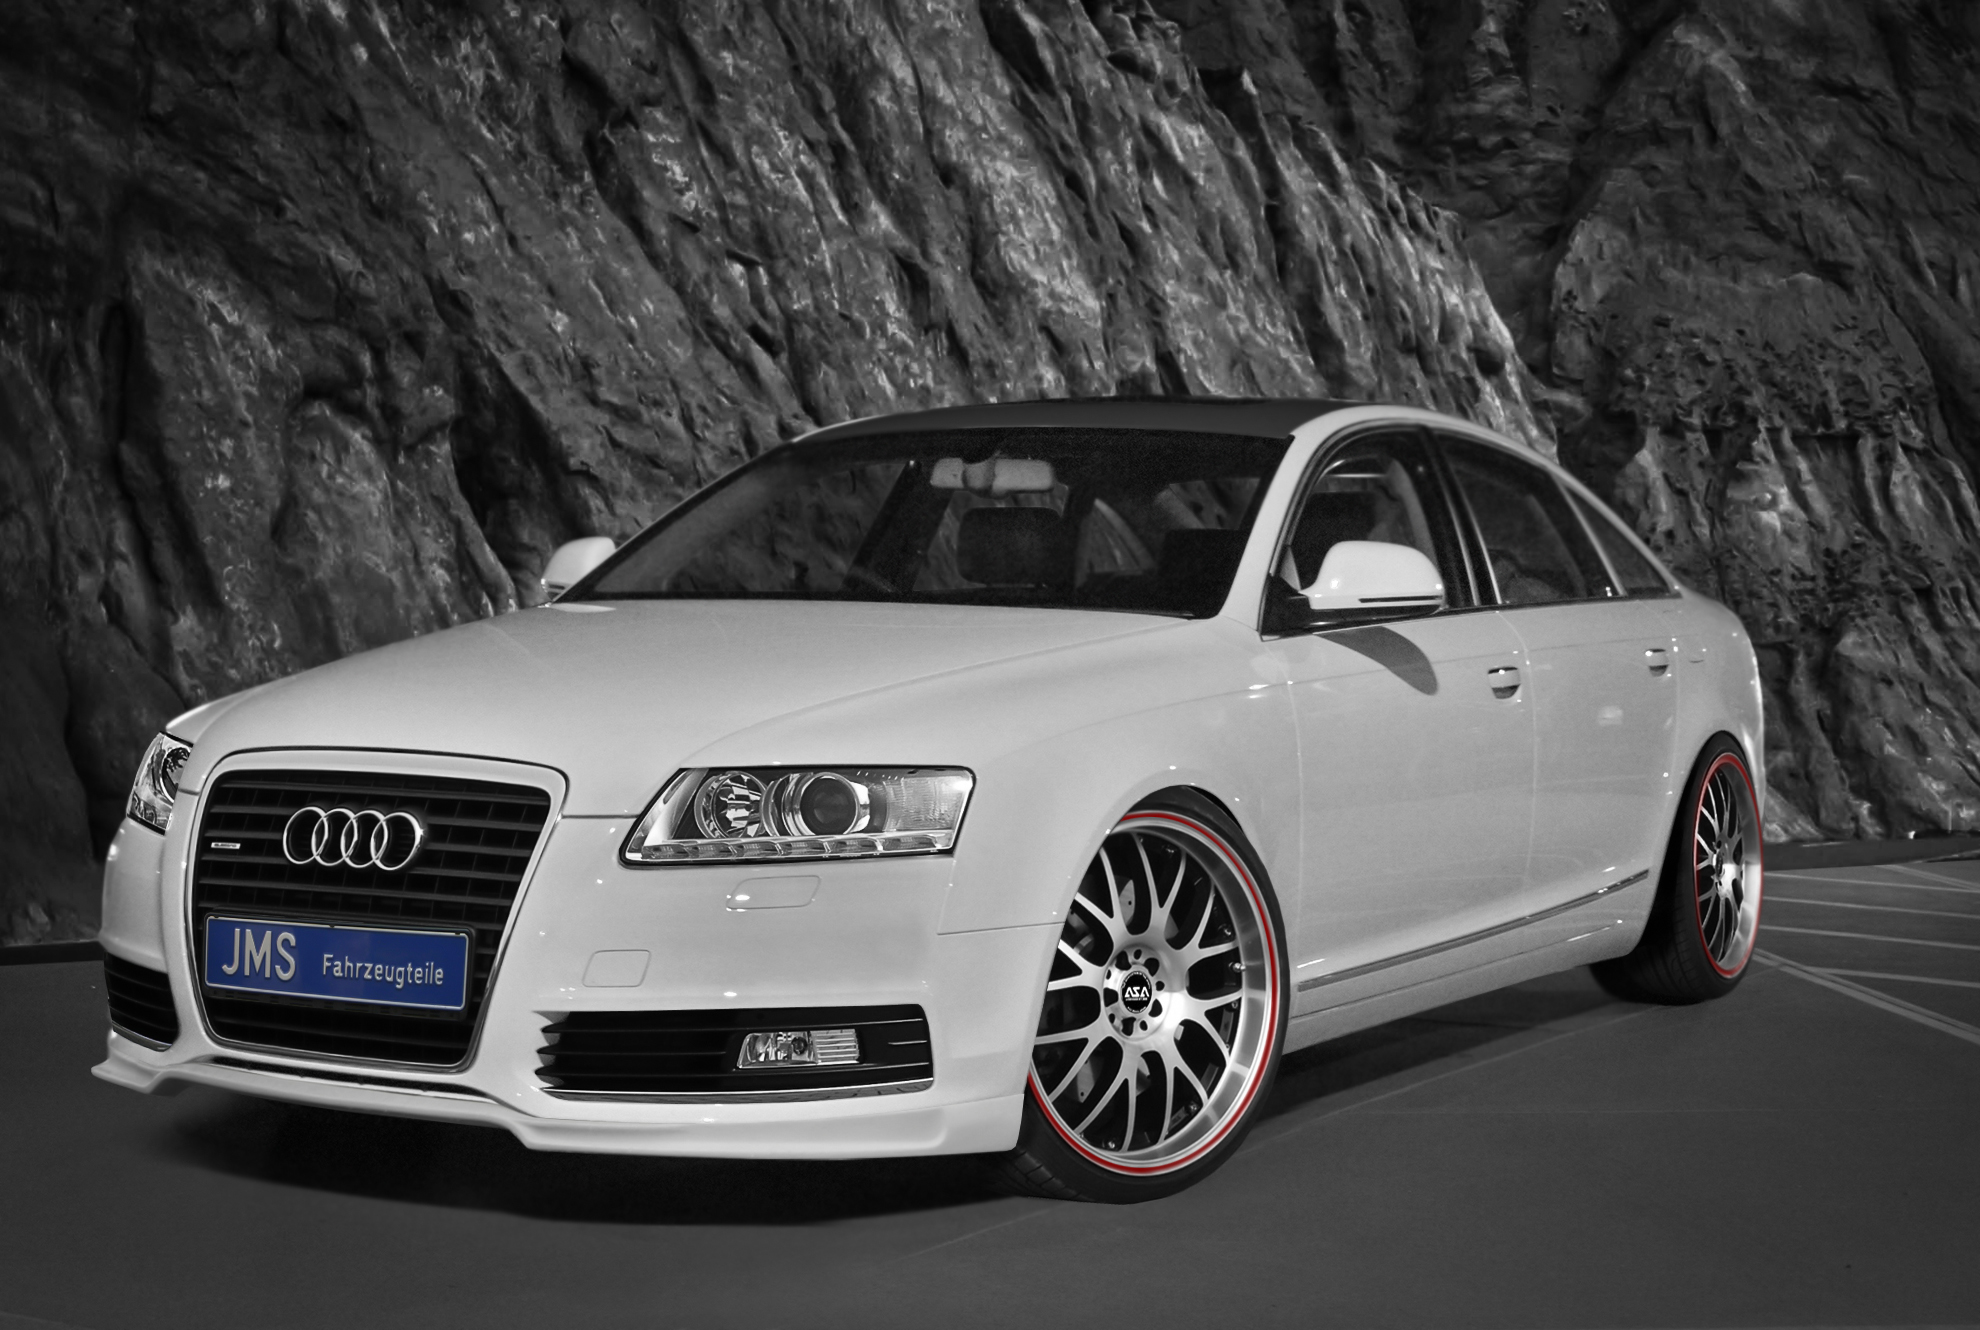 Audi a6 4f facelift styling tuning for Audi a6 4f interieur